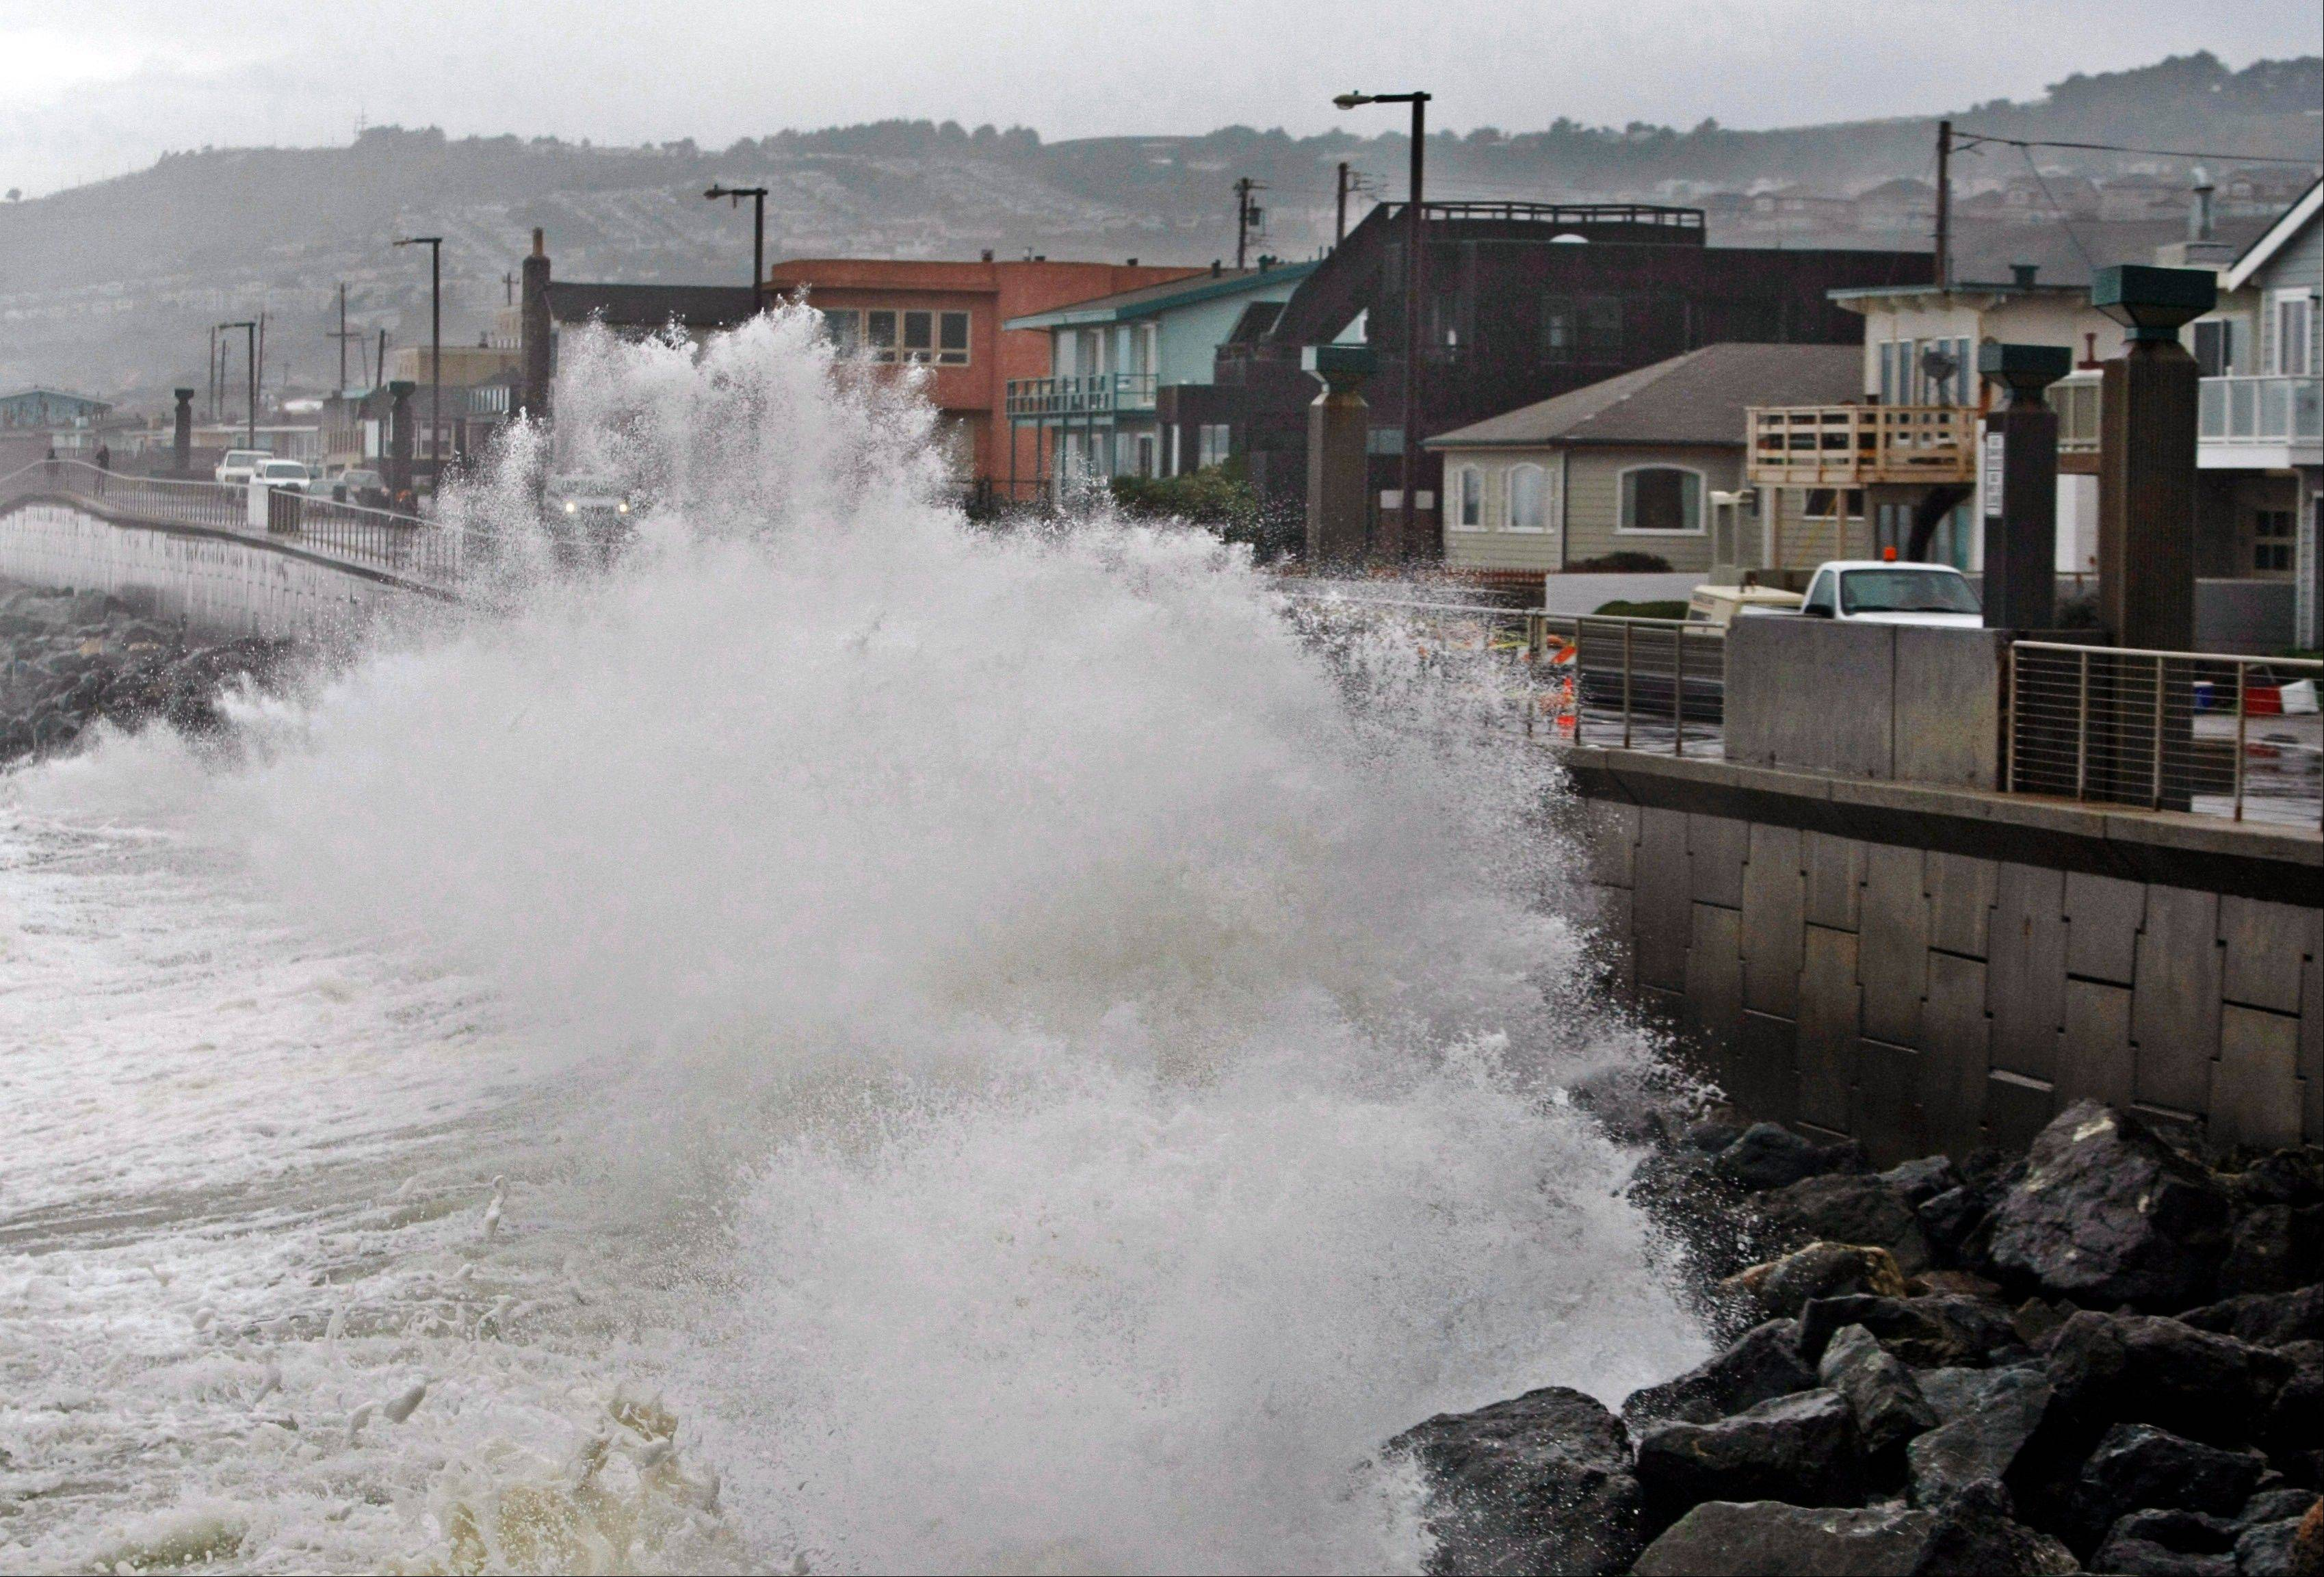 Associated Press/Jan. 20, 2010 Waves pound a wall near buildings in Pacifica, Calif., during a rain storm. A new federal report gives the West Coast its best look yet at what to expect from rising sea levels.